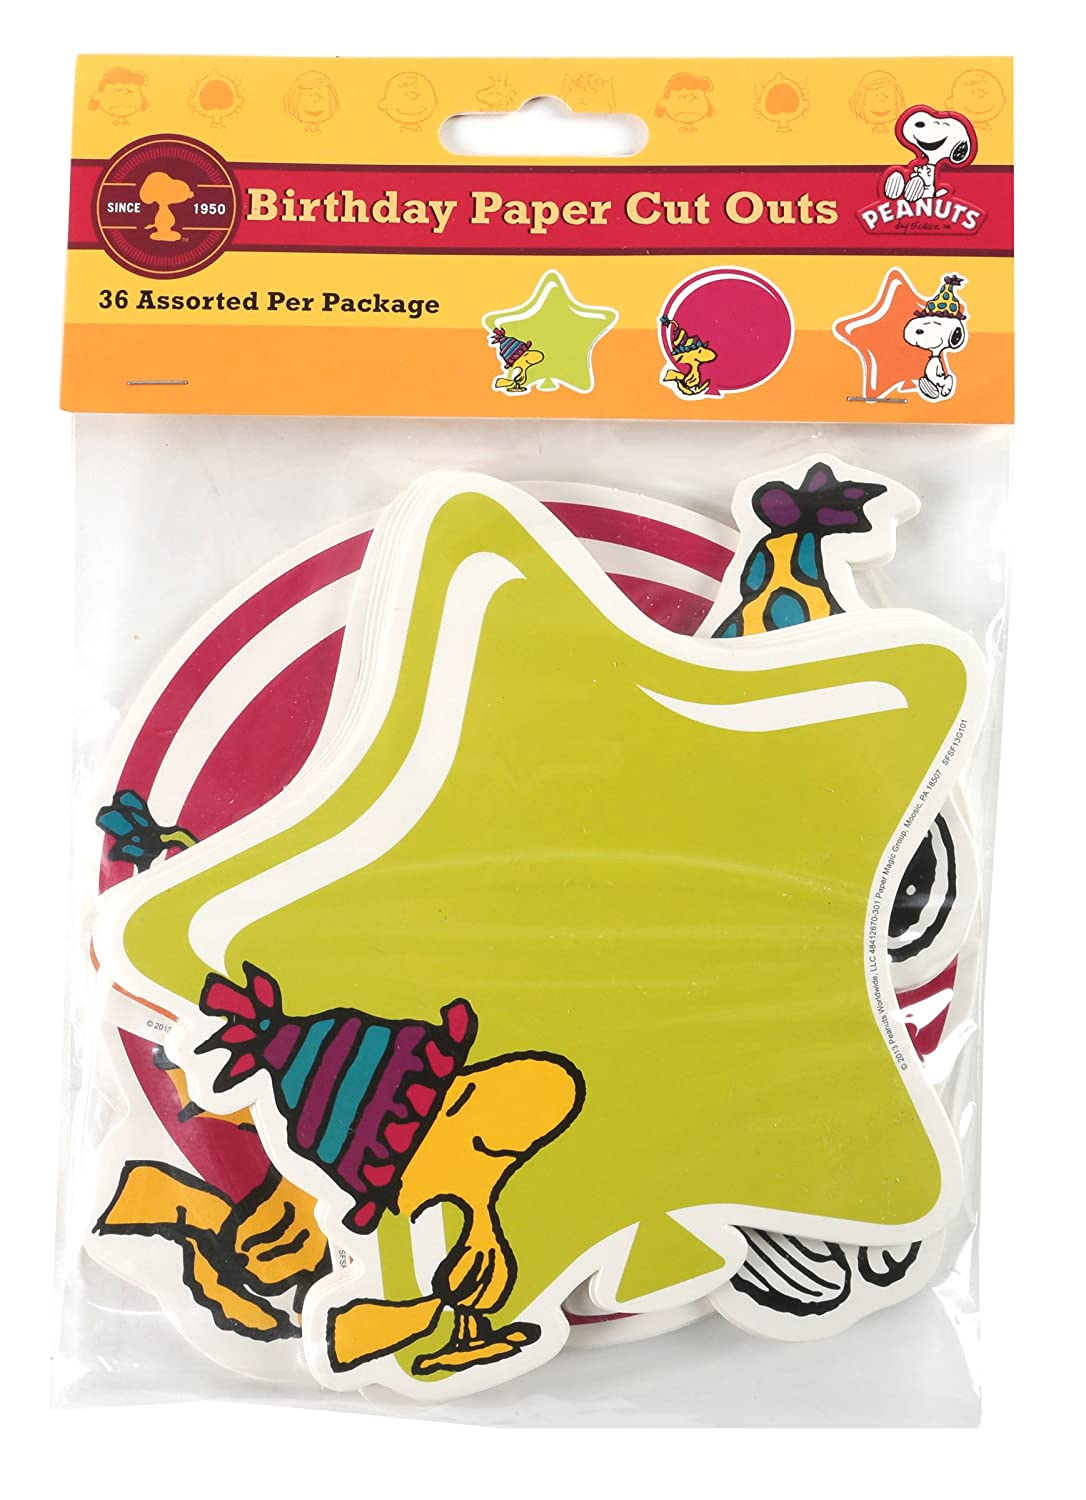 Paper Magic 841267 Eureka Peanuts Birthday Assorted Paper Cut-Outs, 12 Each of 3 Different Designs, 36-Piece Paper Magic Group